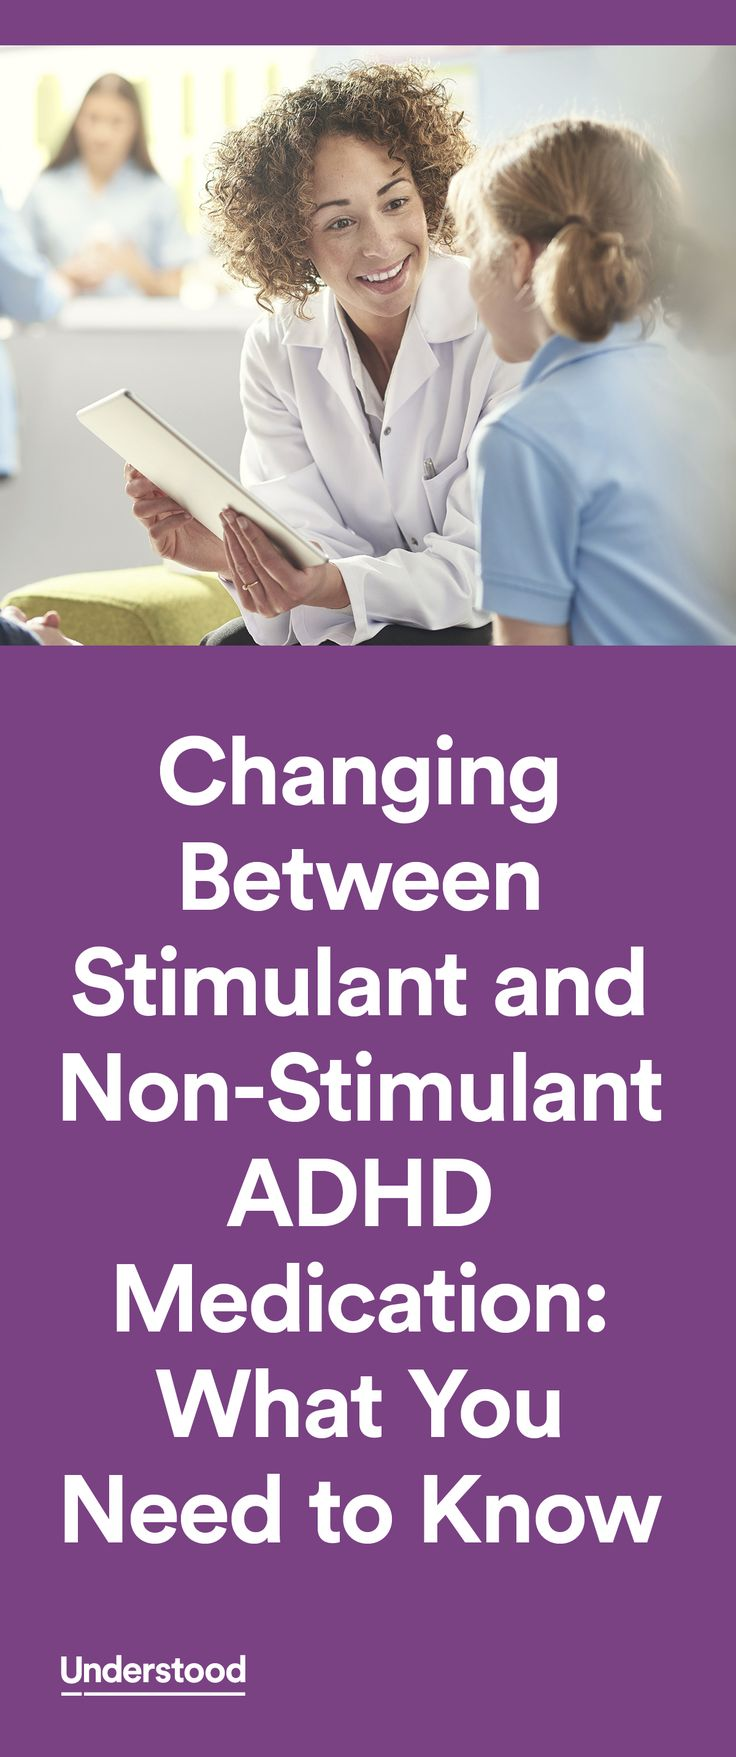 For some kids, the first type or dosage of ADHD medication they try isn't the right one. Sometimes the medication needs to be fine-tuned, possibly more than once. But if those changes aren't adequate, you and your prescriber may wonder whether it makes sense to switch categories of medication. That might be from stimulant to non-stimulant, or the other way around.